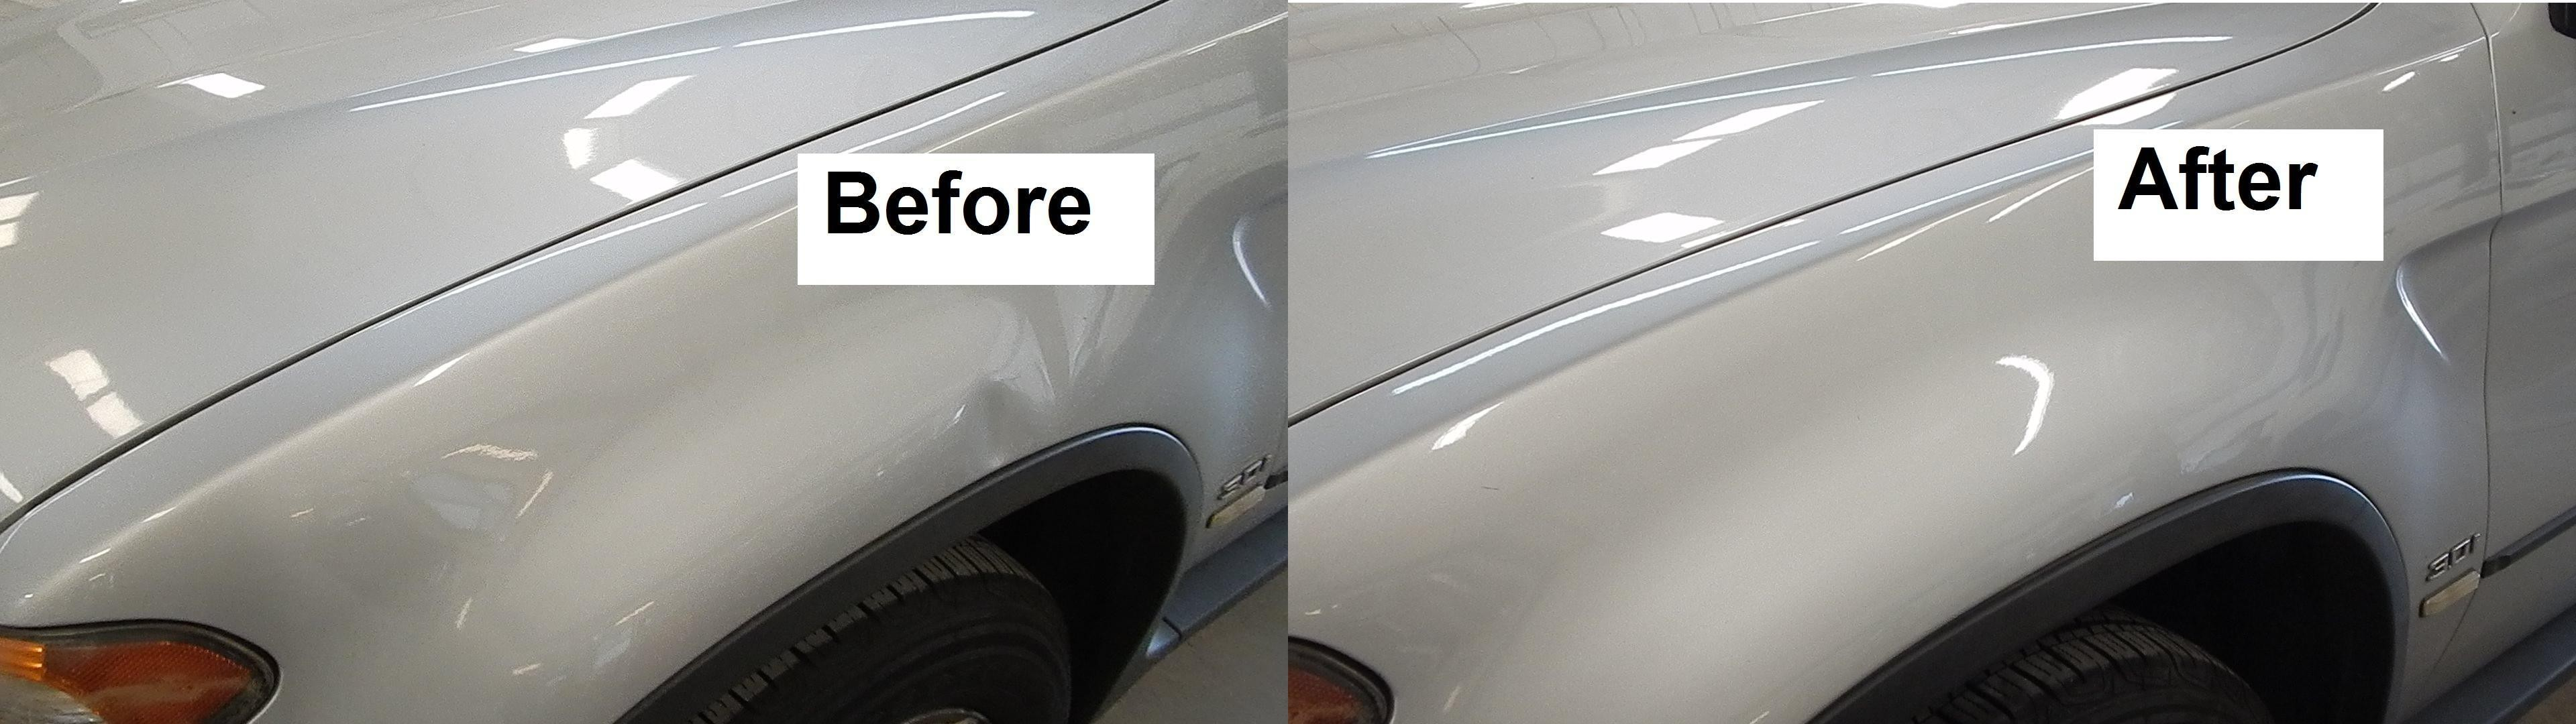 Mobile Dent Removal Business for Sale  Southern Sydney